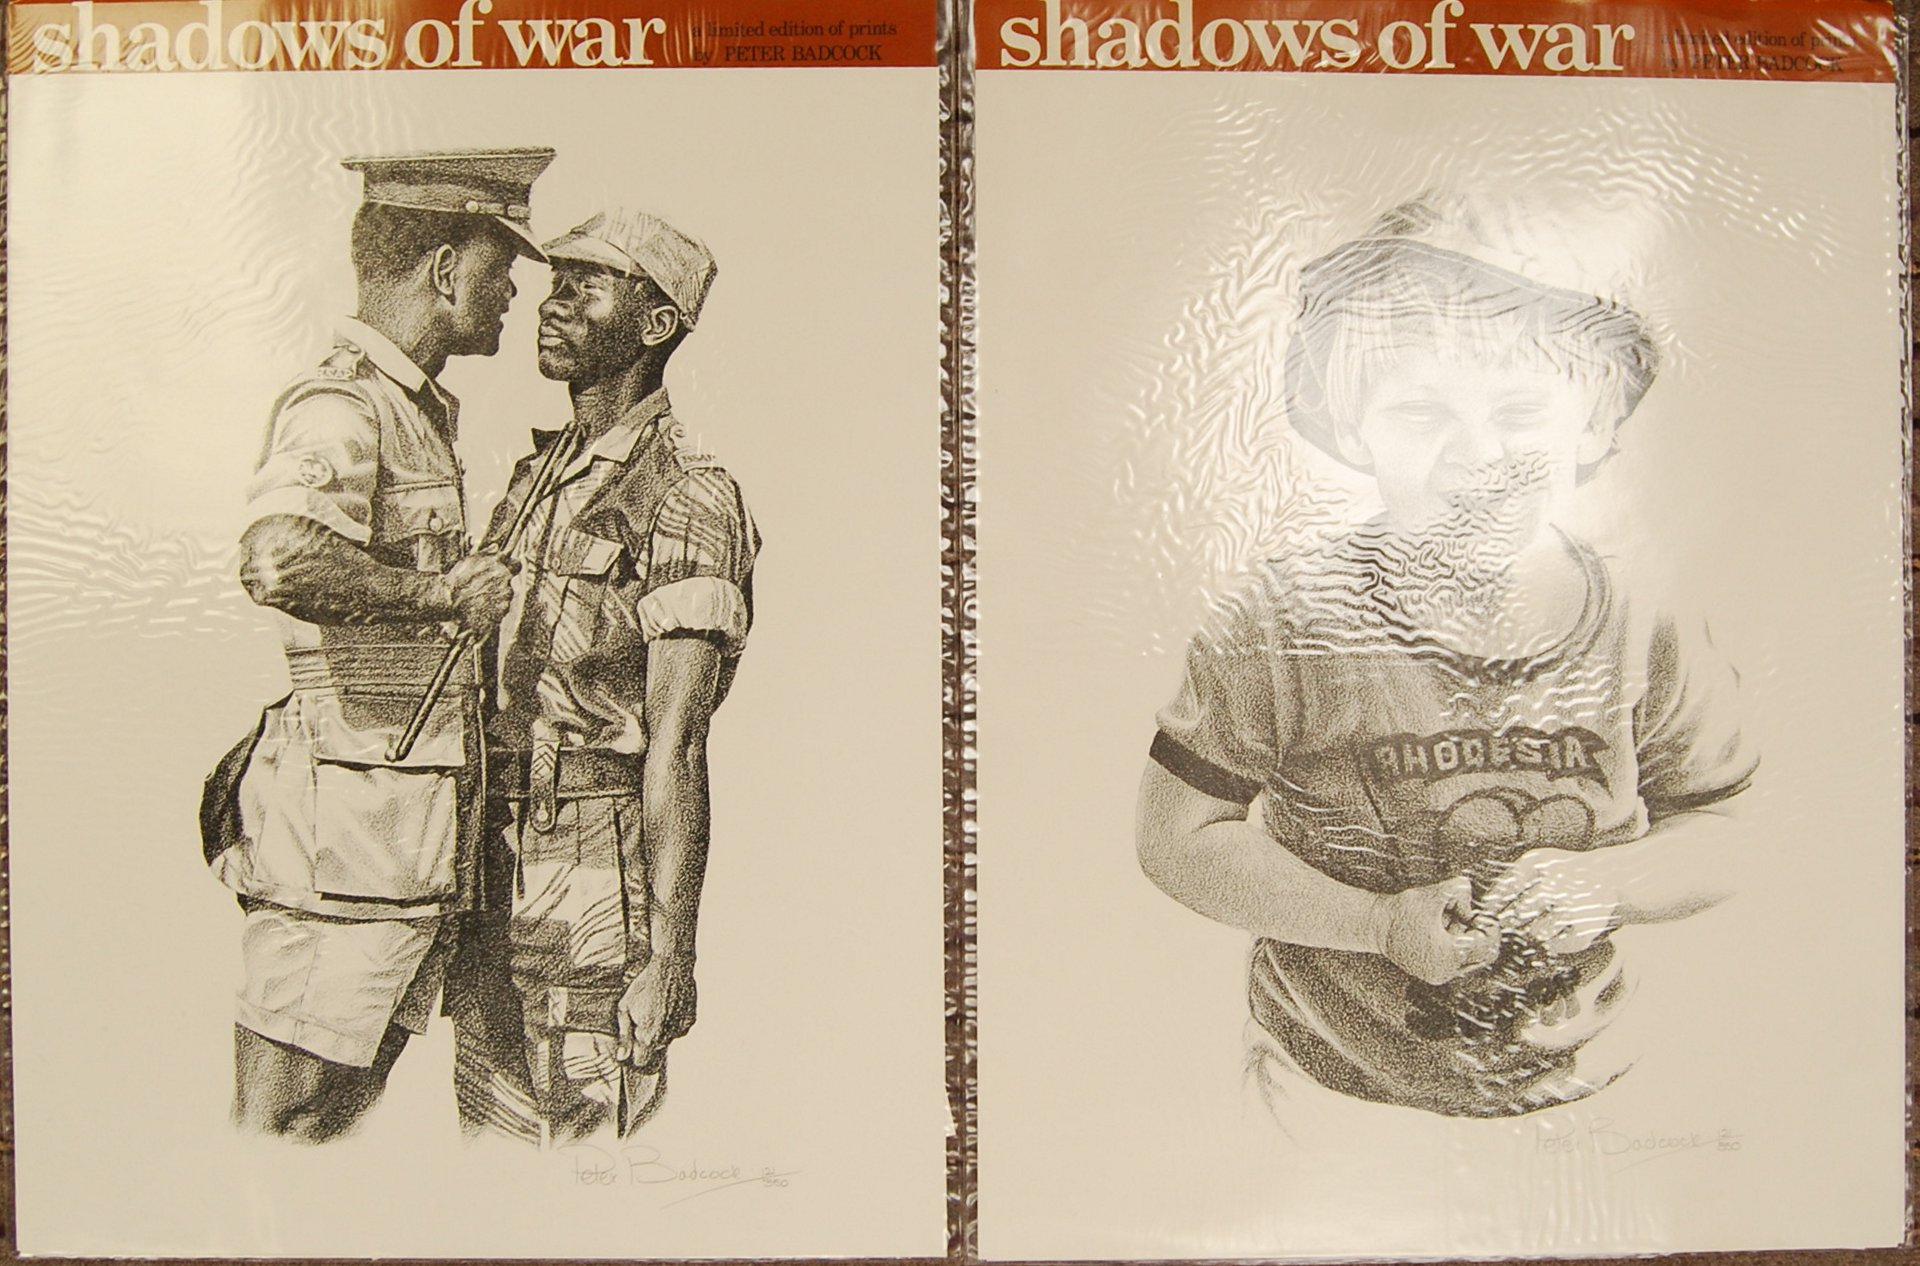 RHODESIA SHADOWS OF WAR LIMITED EDITION PRINTS BY PETER BADCOCK - Image 3 of 5